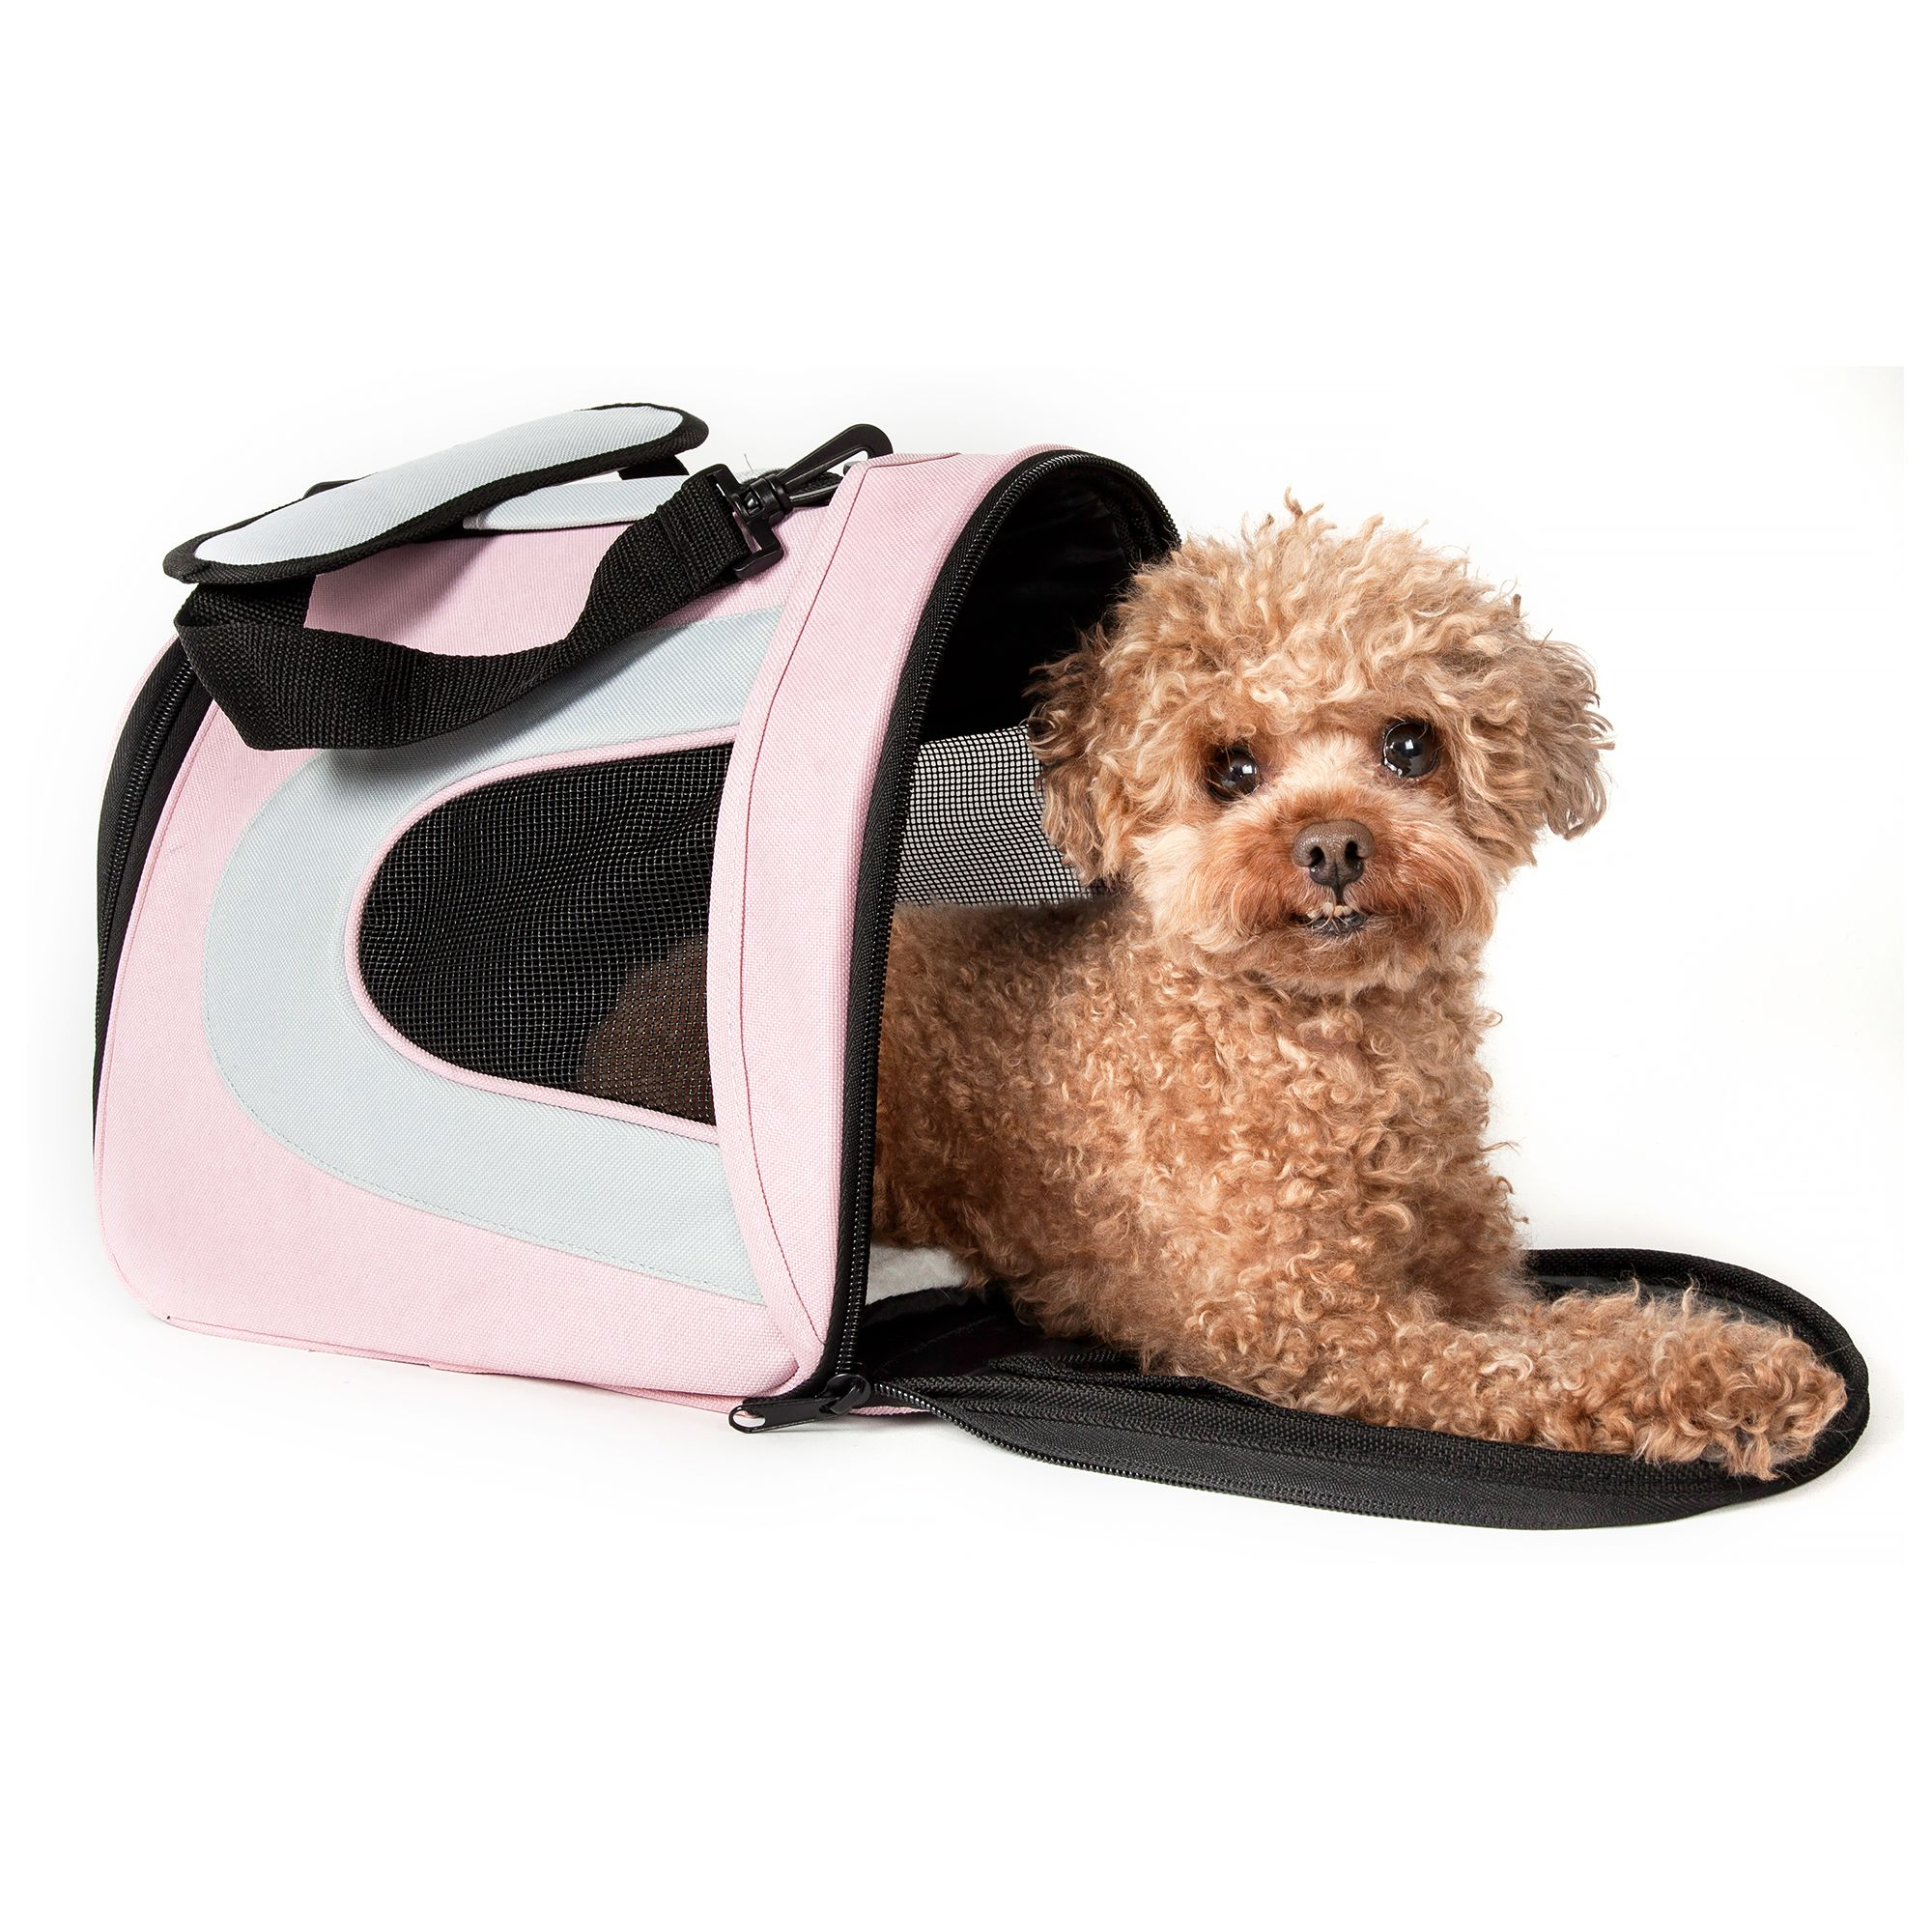 Pet Life Airline Approved Folding Sporty Mesh Pet Carrier Size 16.9l X 10.2w X 9.8h Pink